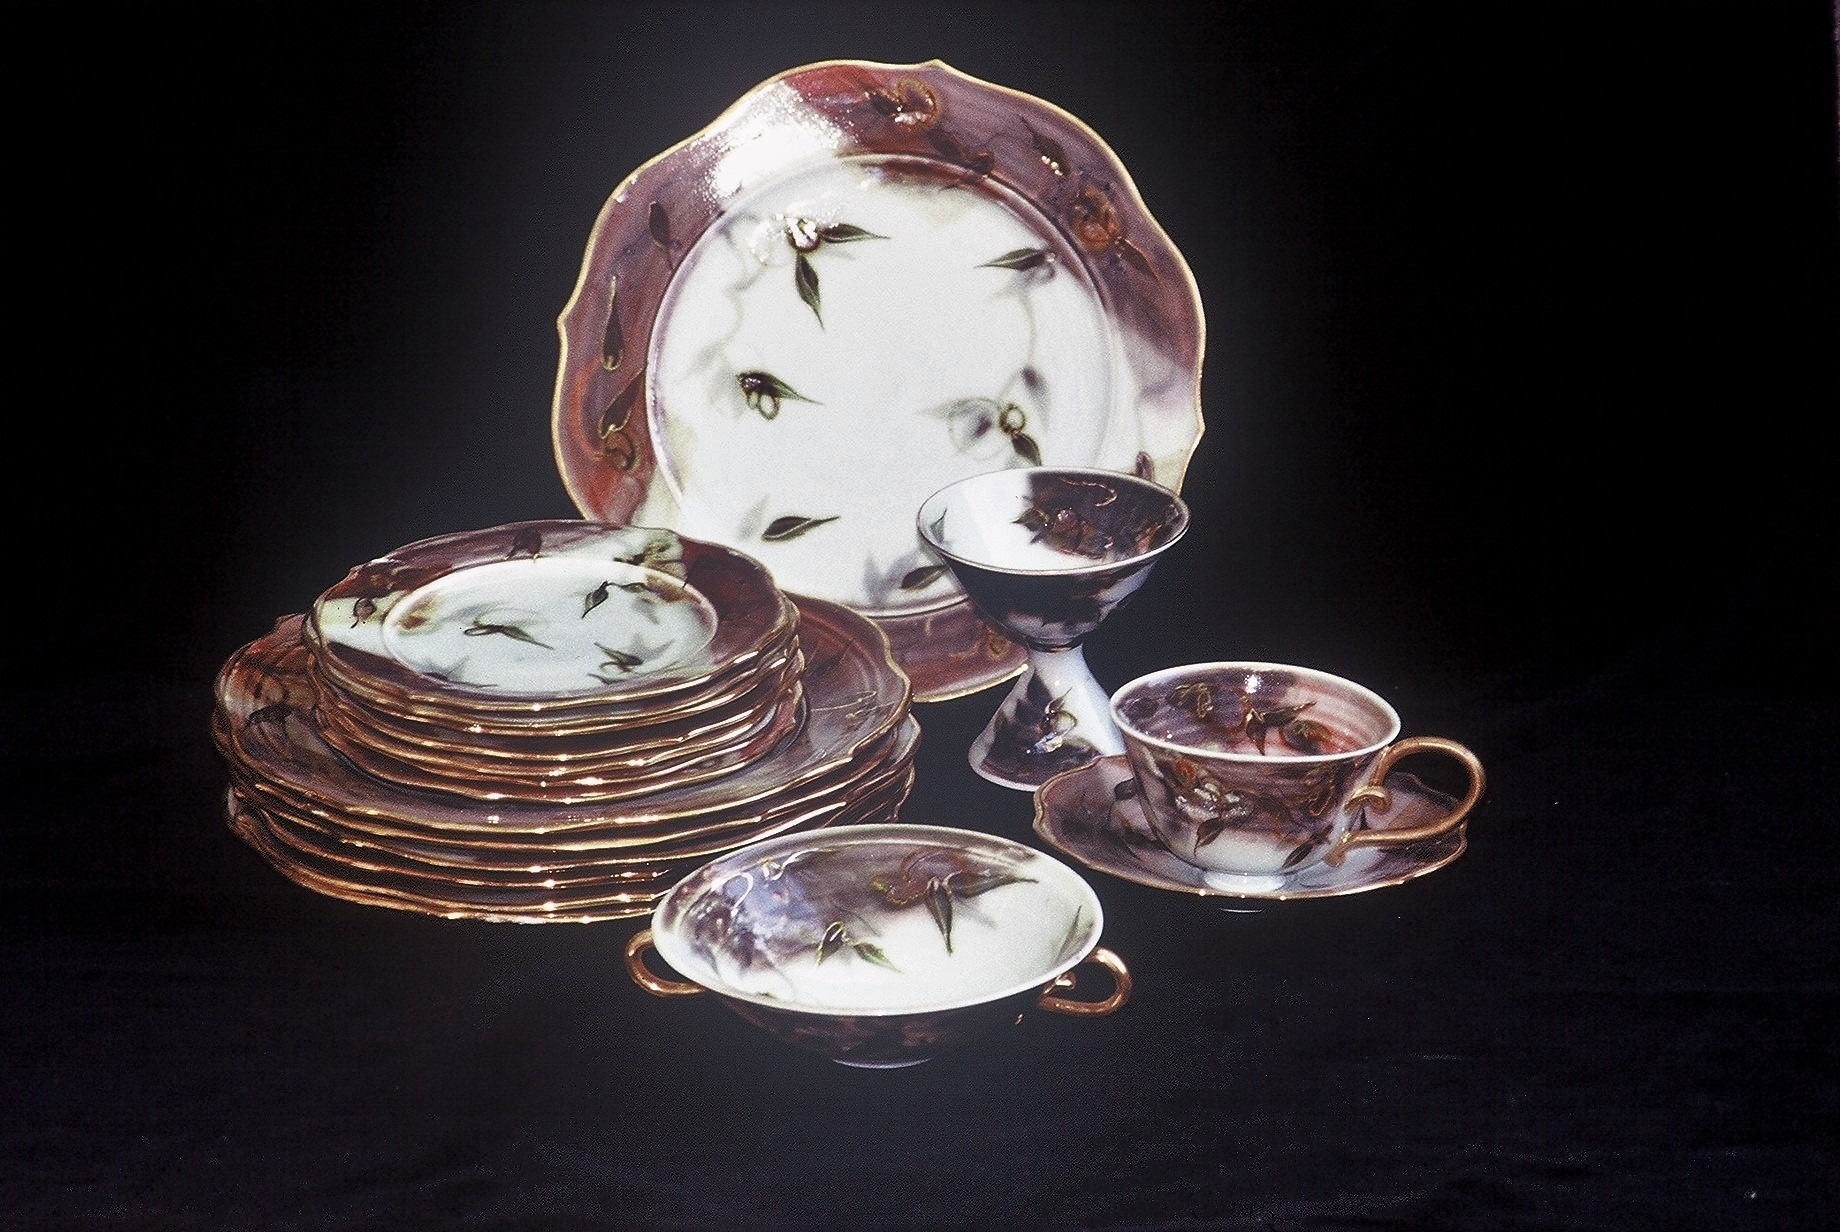 Valerie Metcalfe. c.1987-88. Painted Dinner set with gold lustre. Porcelain, Gold Lustre. Plate: 30.5 cm; side plate: 20.3 cm; bowl 17.8 cm; saucer 12.7 cm; cup 8.9 x 8.9 cm.